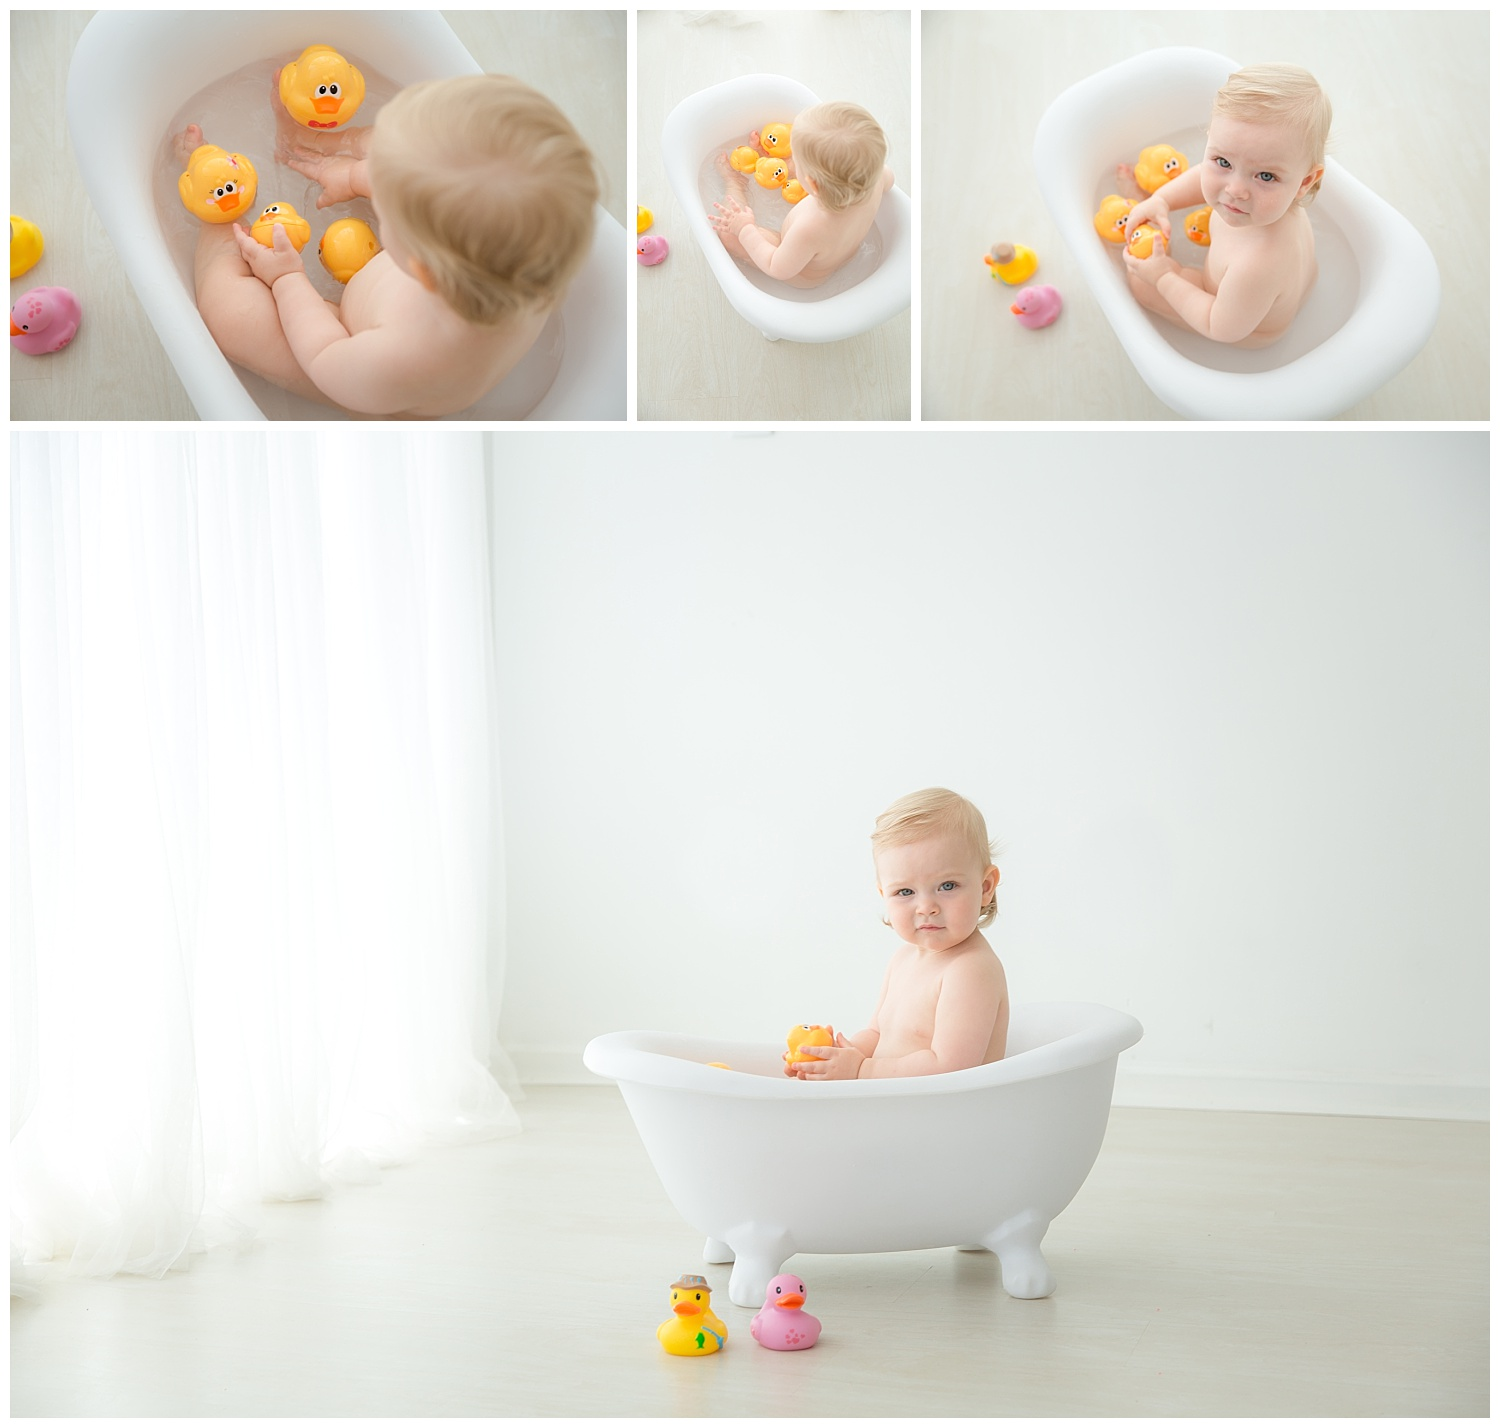 blonde little girl in a white claw foot tub in moorestown new jersey splashing in water and rubber duckies